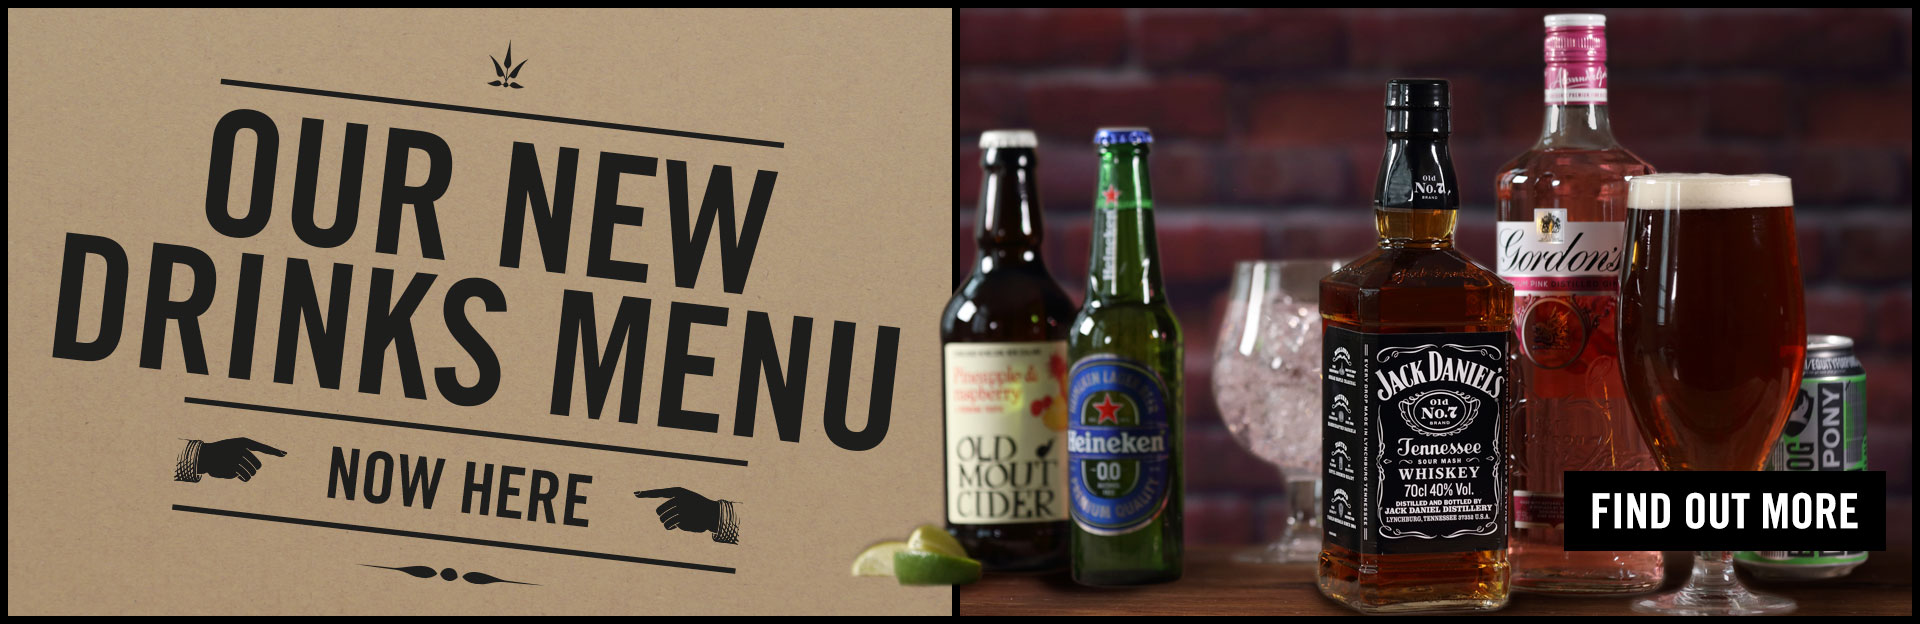 New Drinks Menu Coming Soon at The George Inn